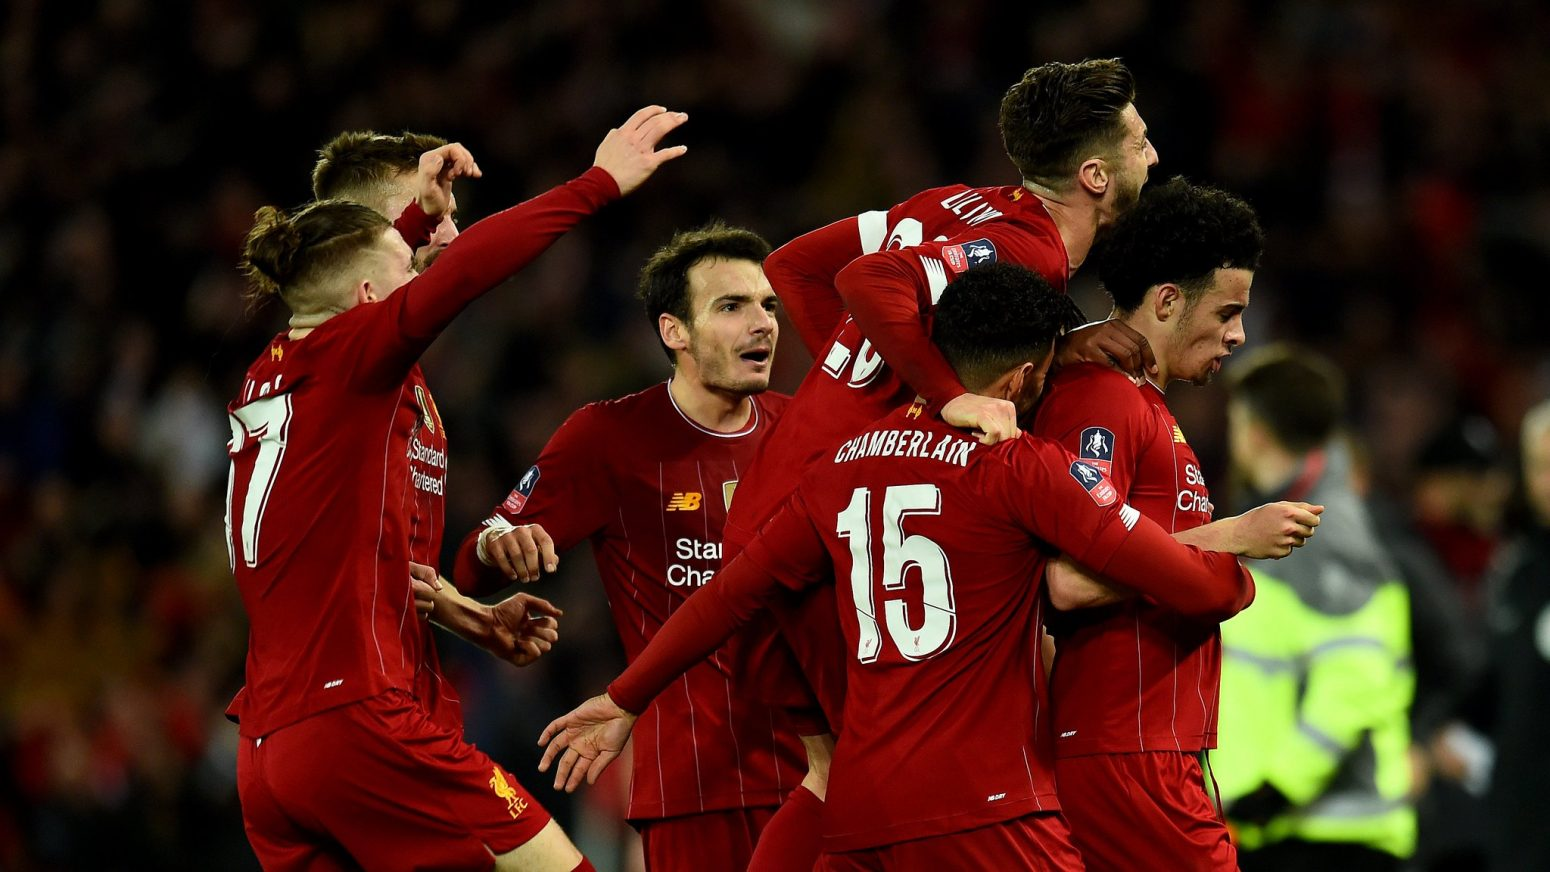 The best photos from Anfield as Liverpool knock Everton out of FA Cup